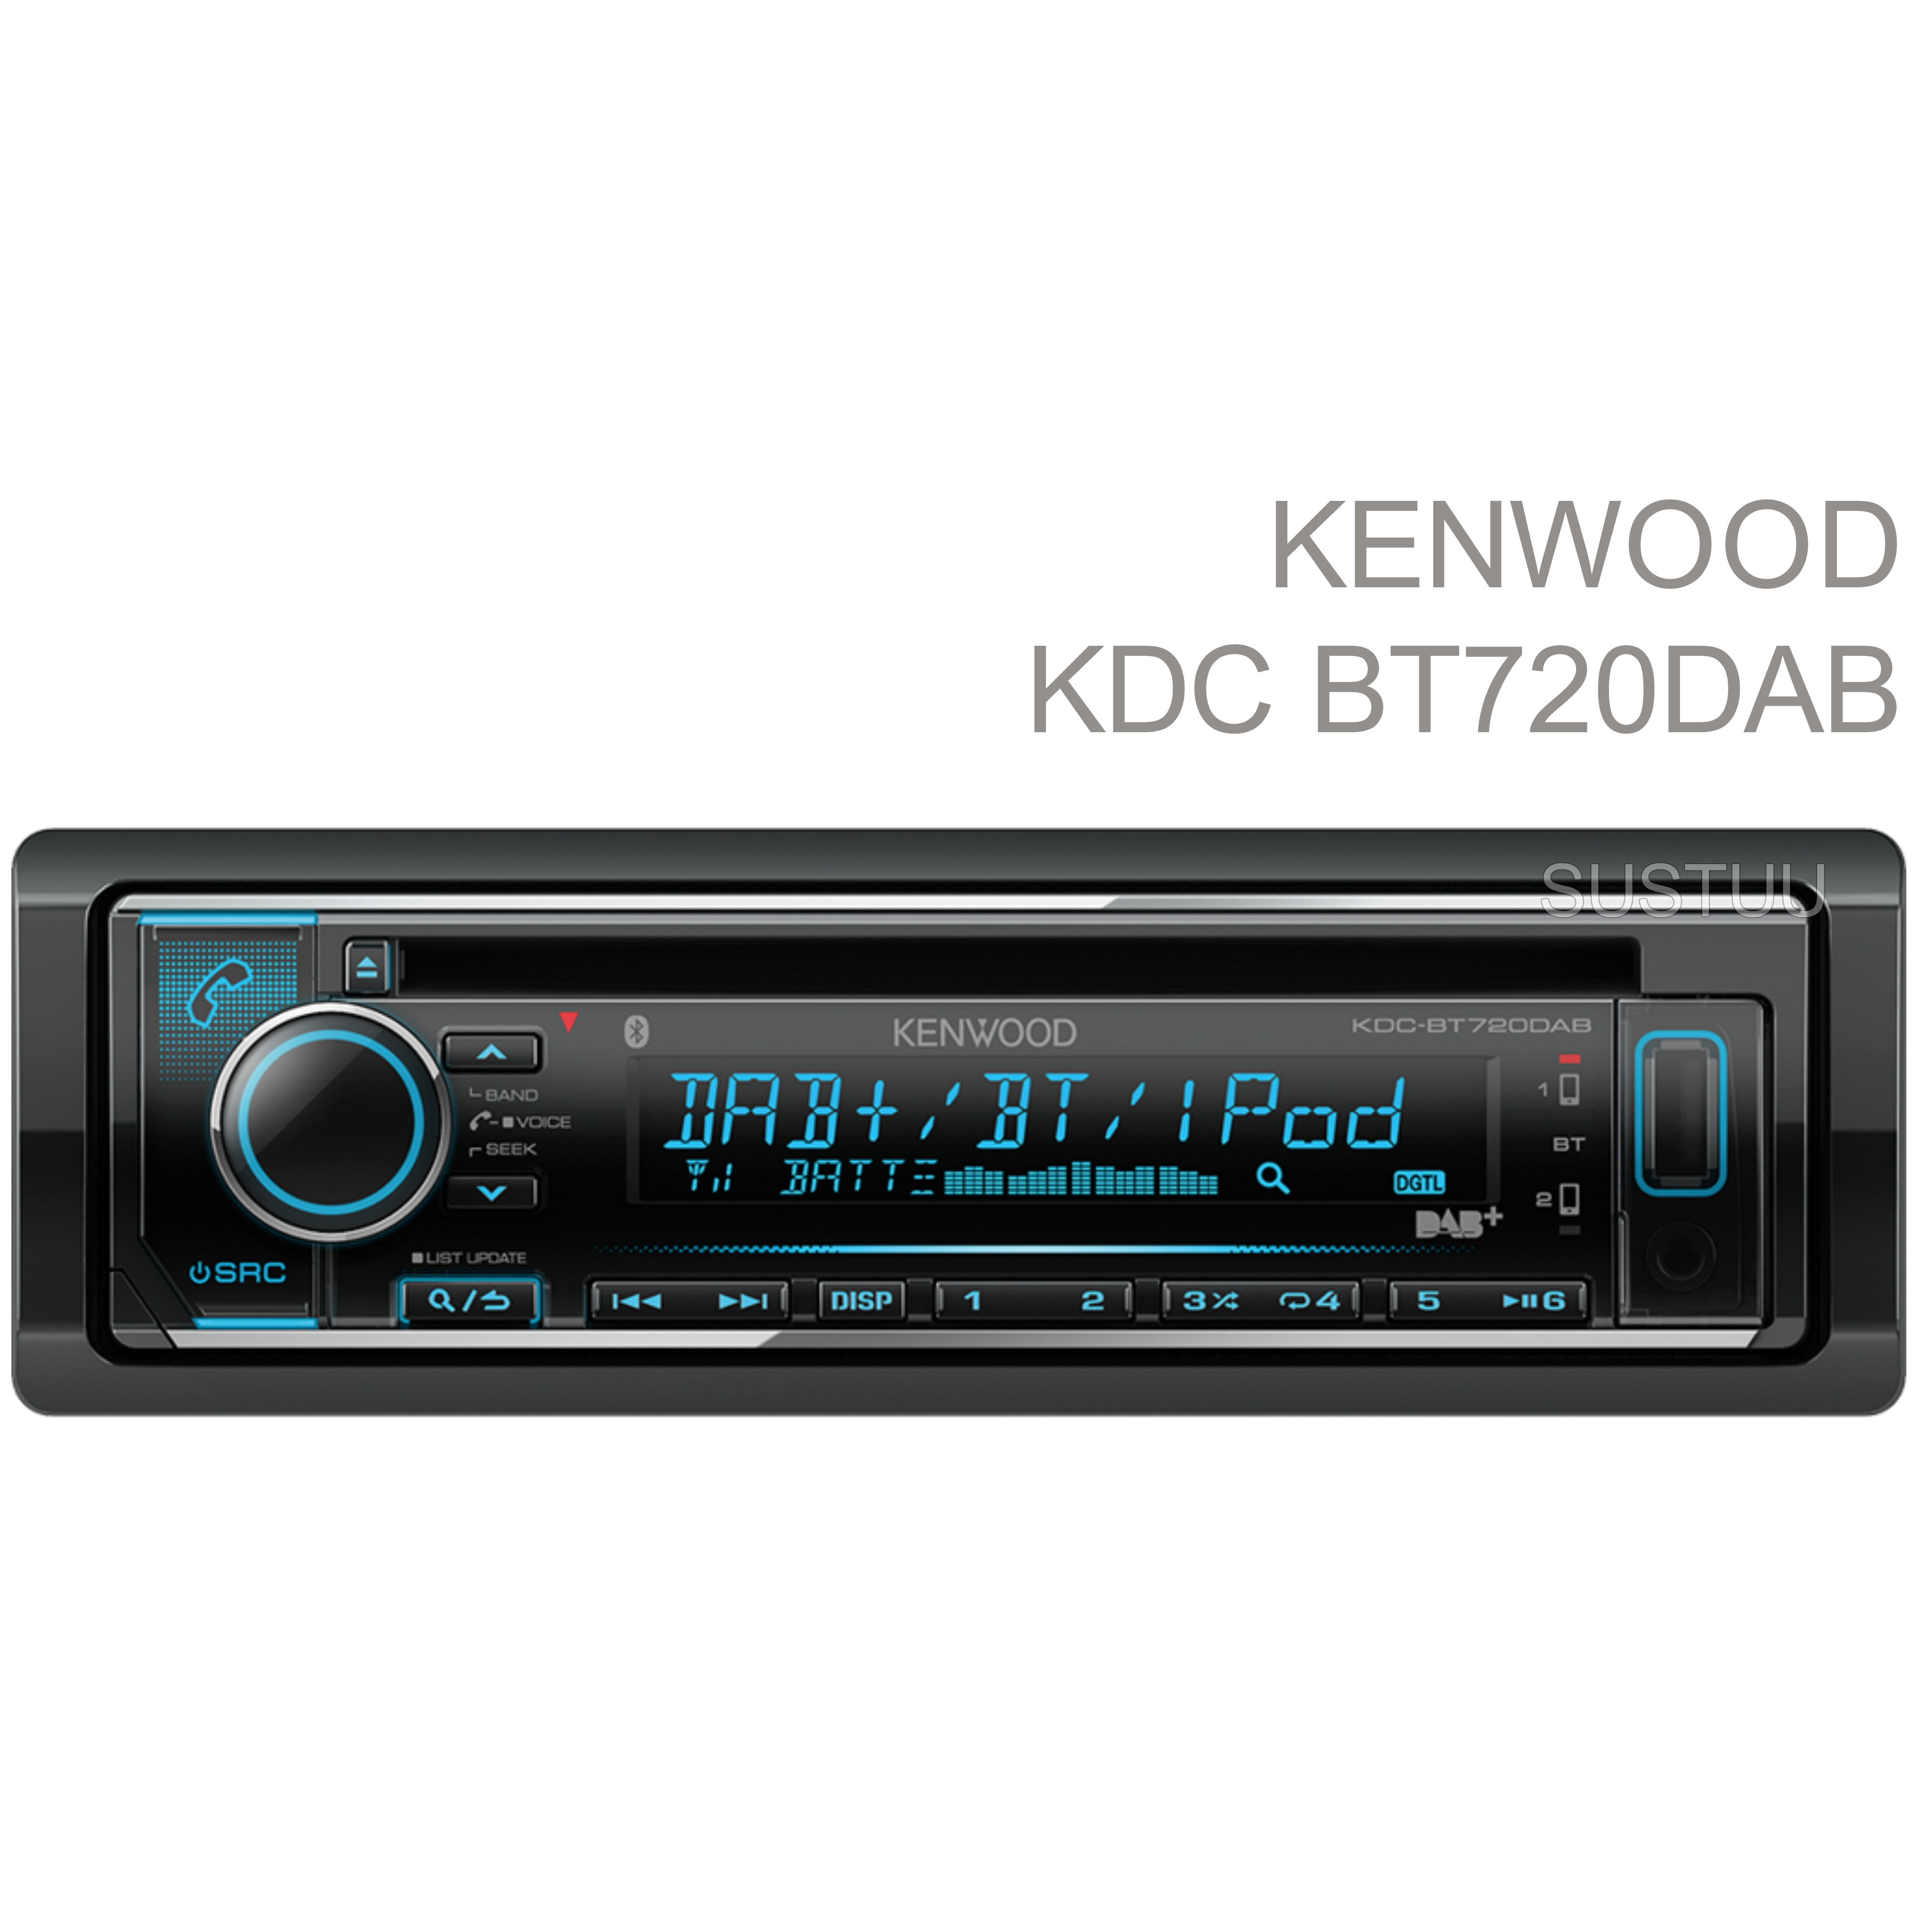 Kenwood Car Stereo|DAB+|FLAC|USB|Aux|Bluetooth|iPod-iPhone-Android|Illumination